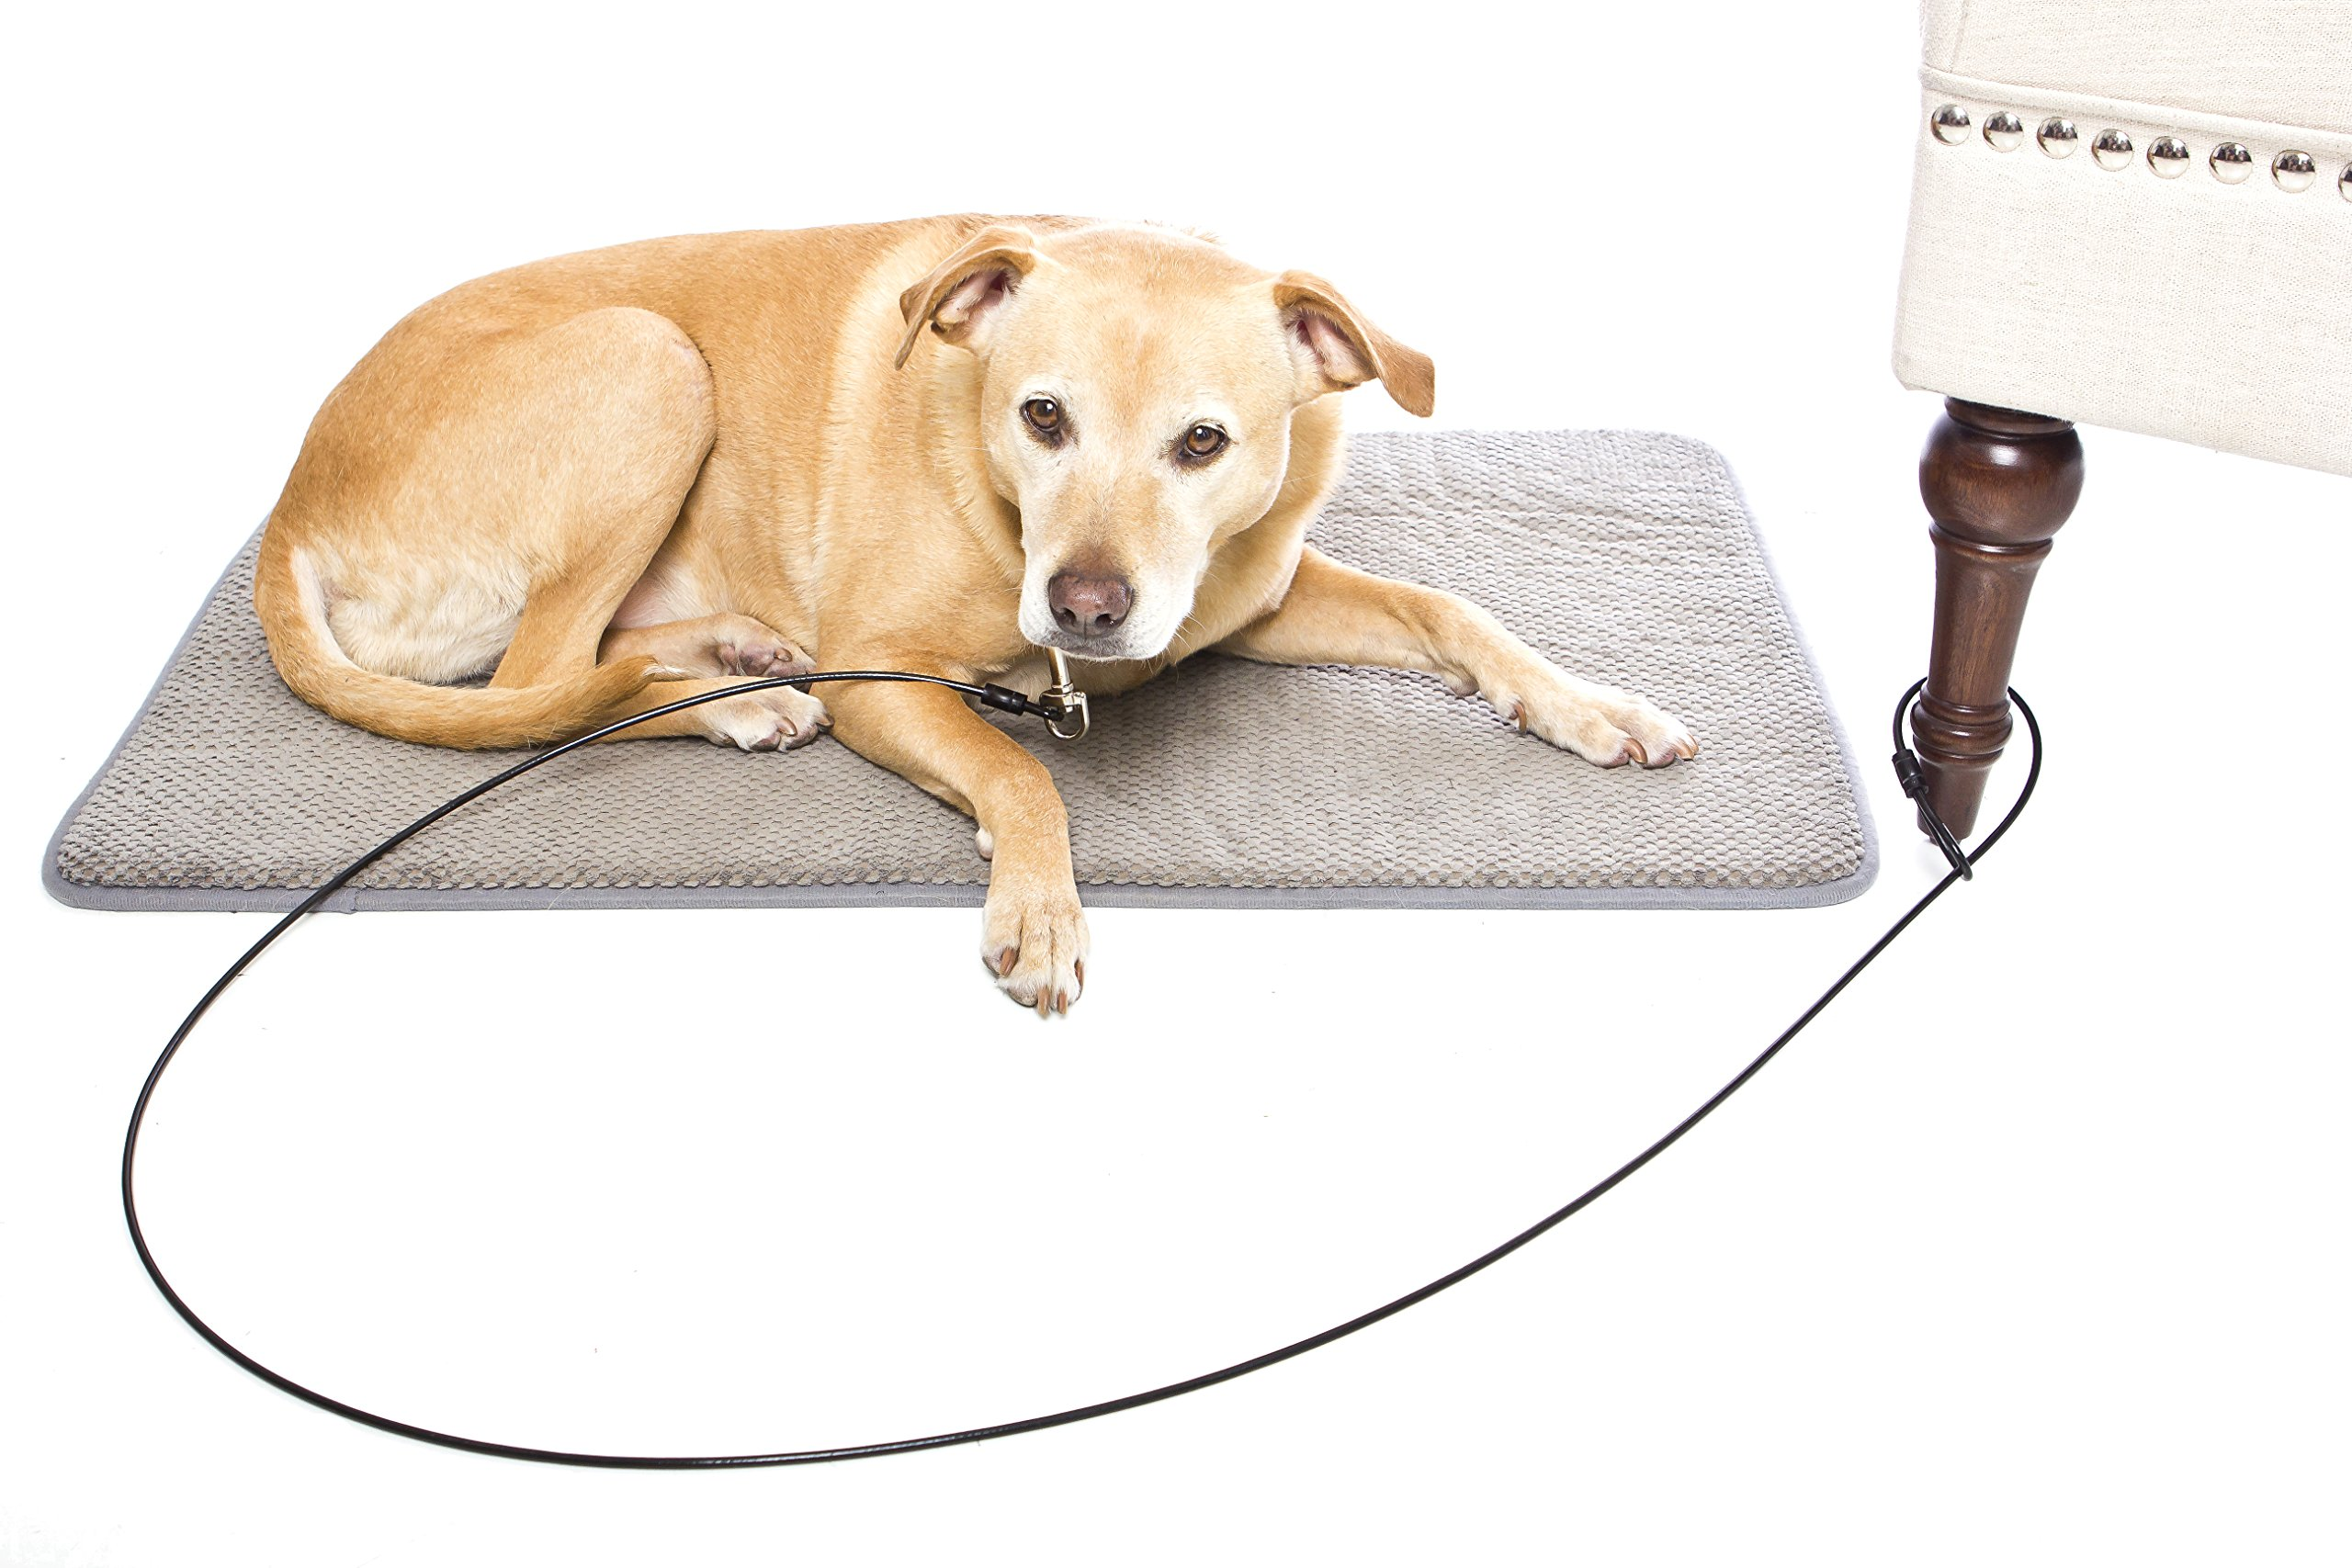 Last Leash Chew-Proof Training Tie Down - Tether Restraint for Dogs & Teething Puppies (6 feet) by Last Leash (Image #4)